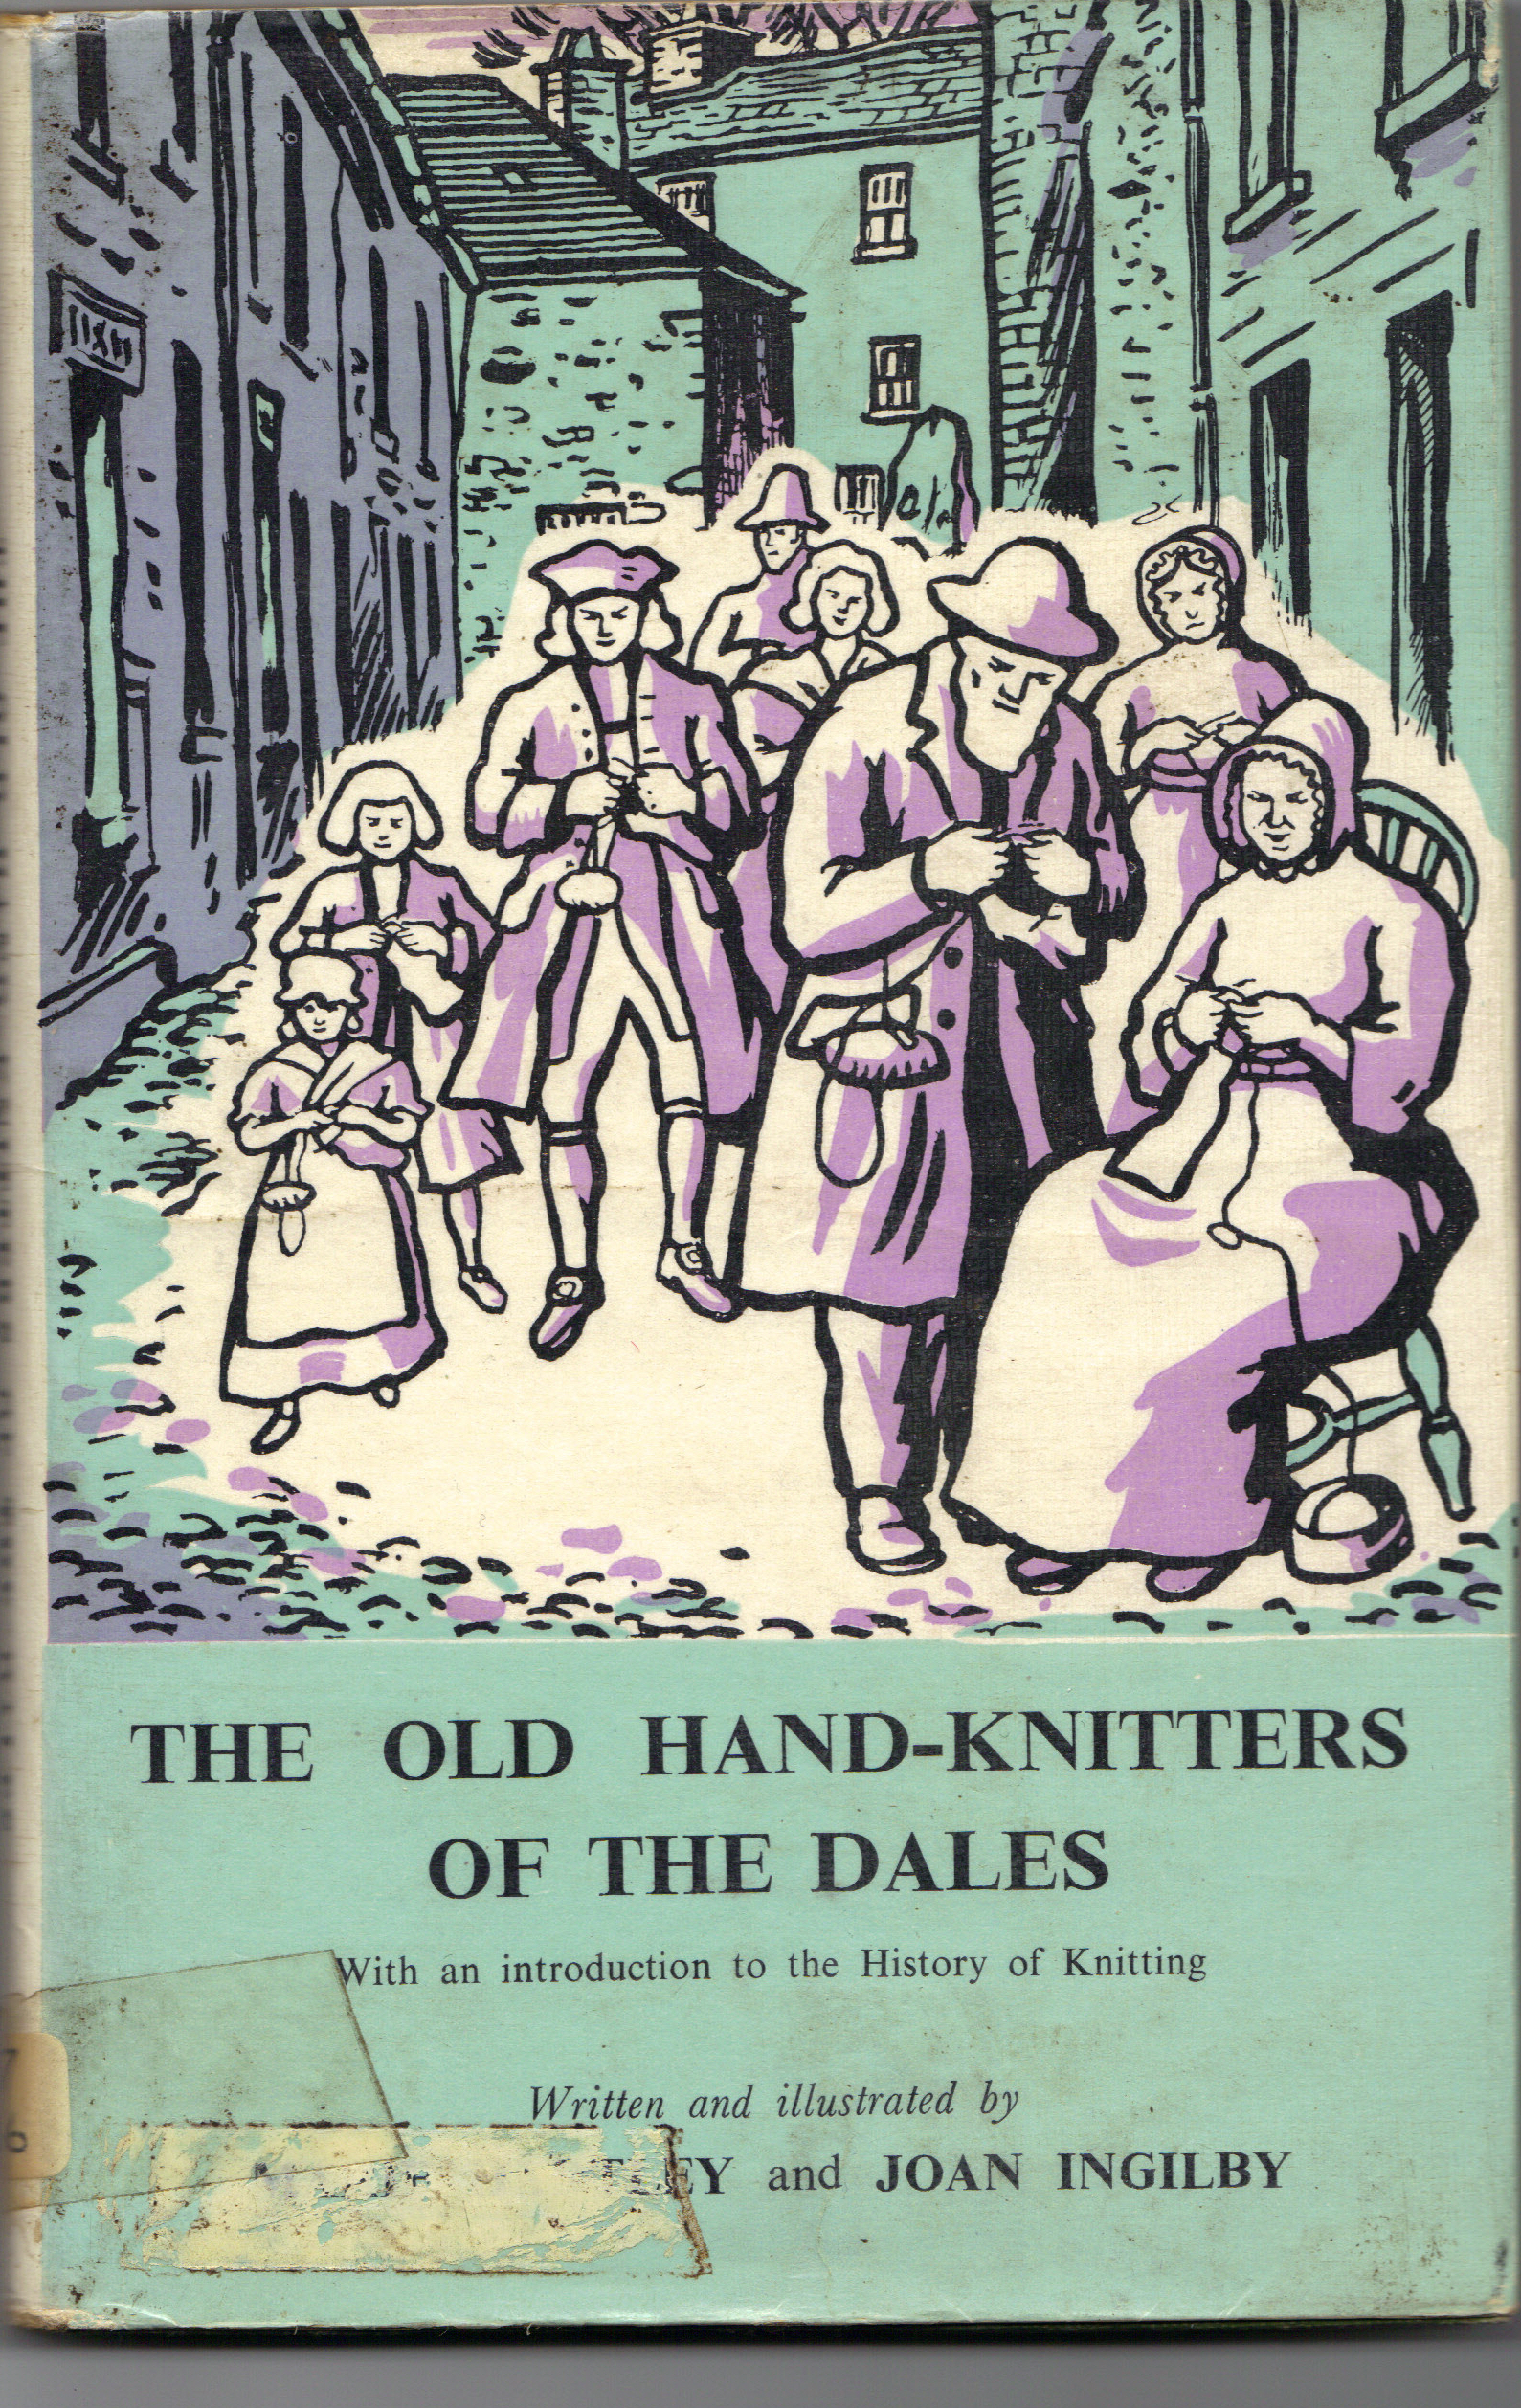 of the Dales, 1951